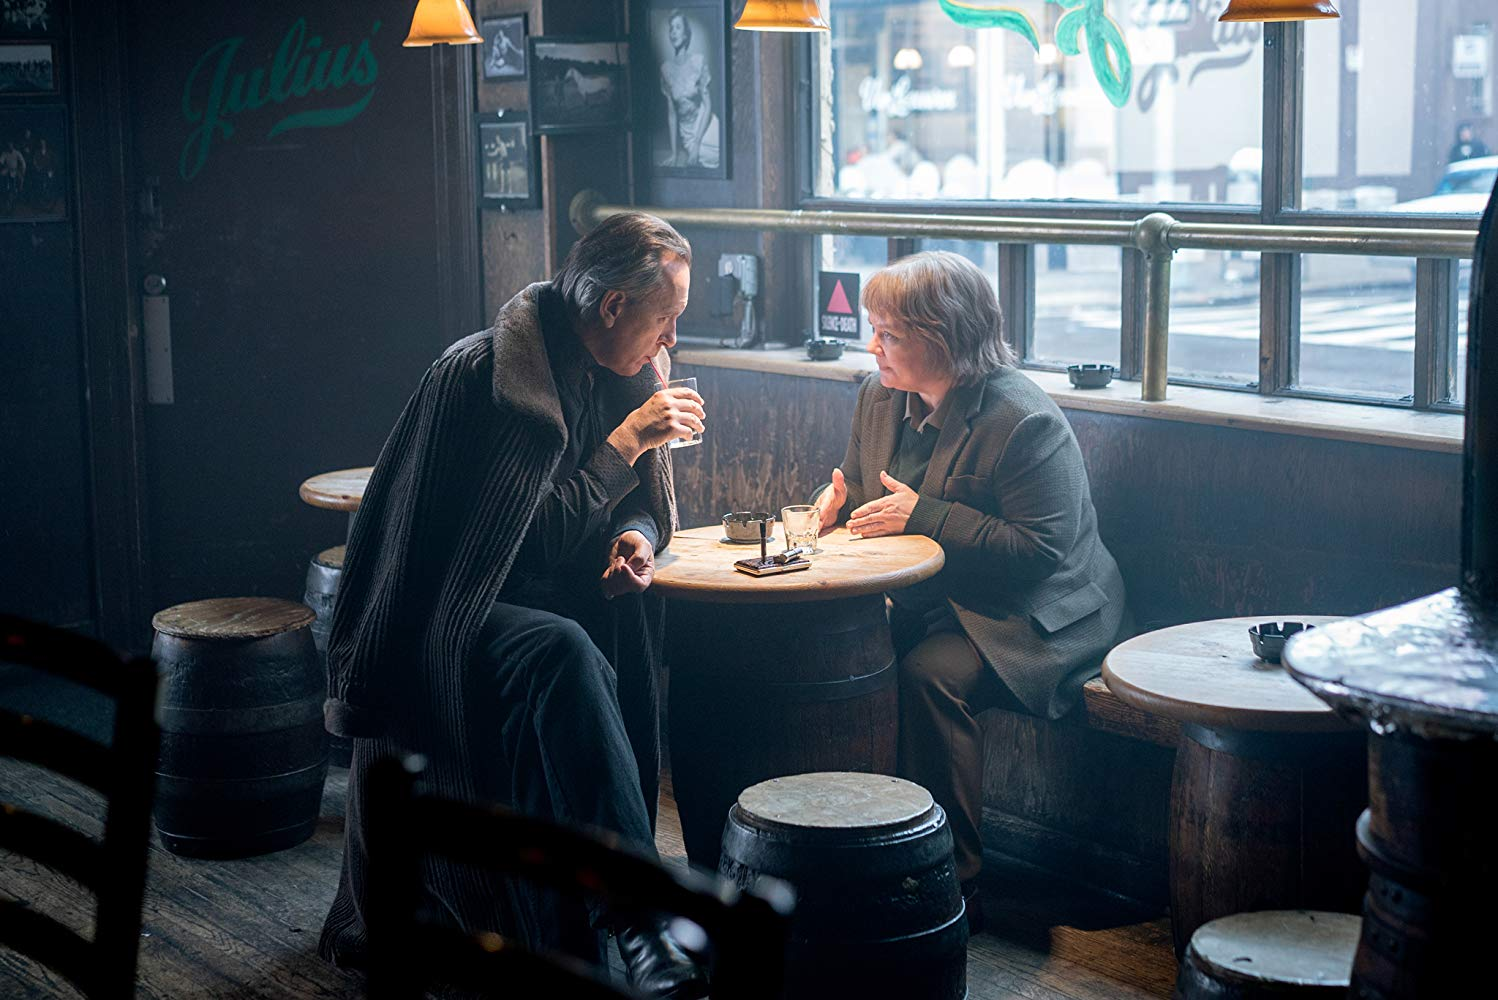 can you ever forgive me?, movie reviews, Lucas Mirabella